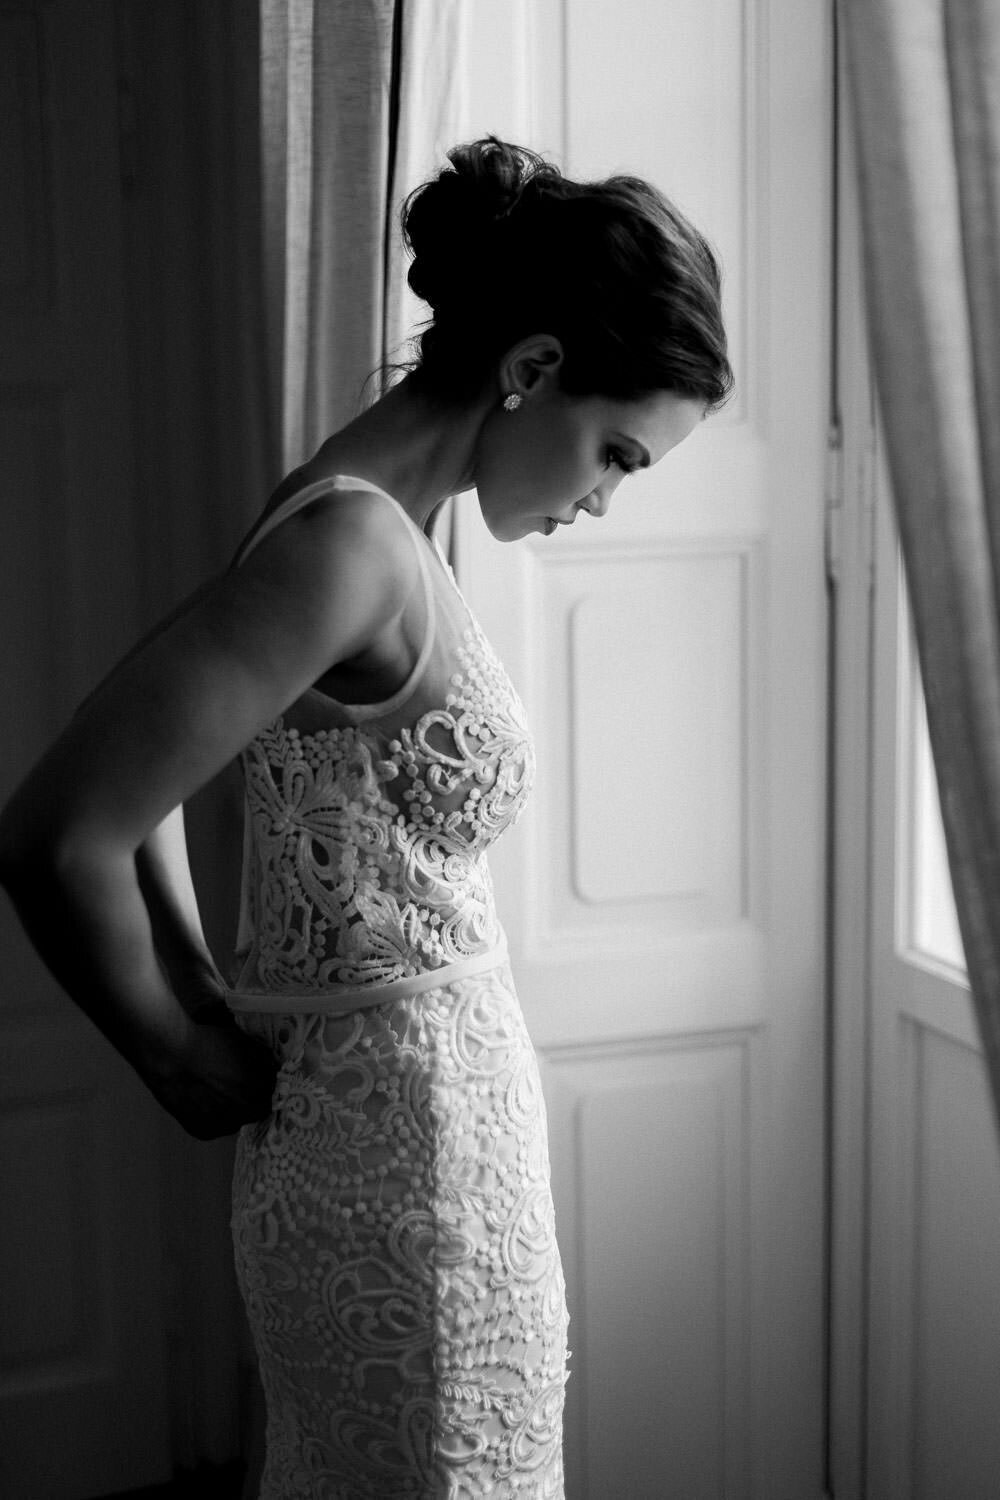 bride bride putting on white lace wedding dress by window before wedding ceremony in Lake Como Italy on white lace wedding dress by window before wedding ceremony in Lake Como Italy